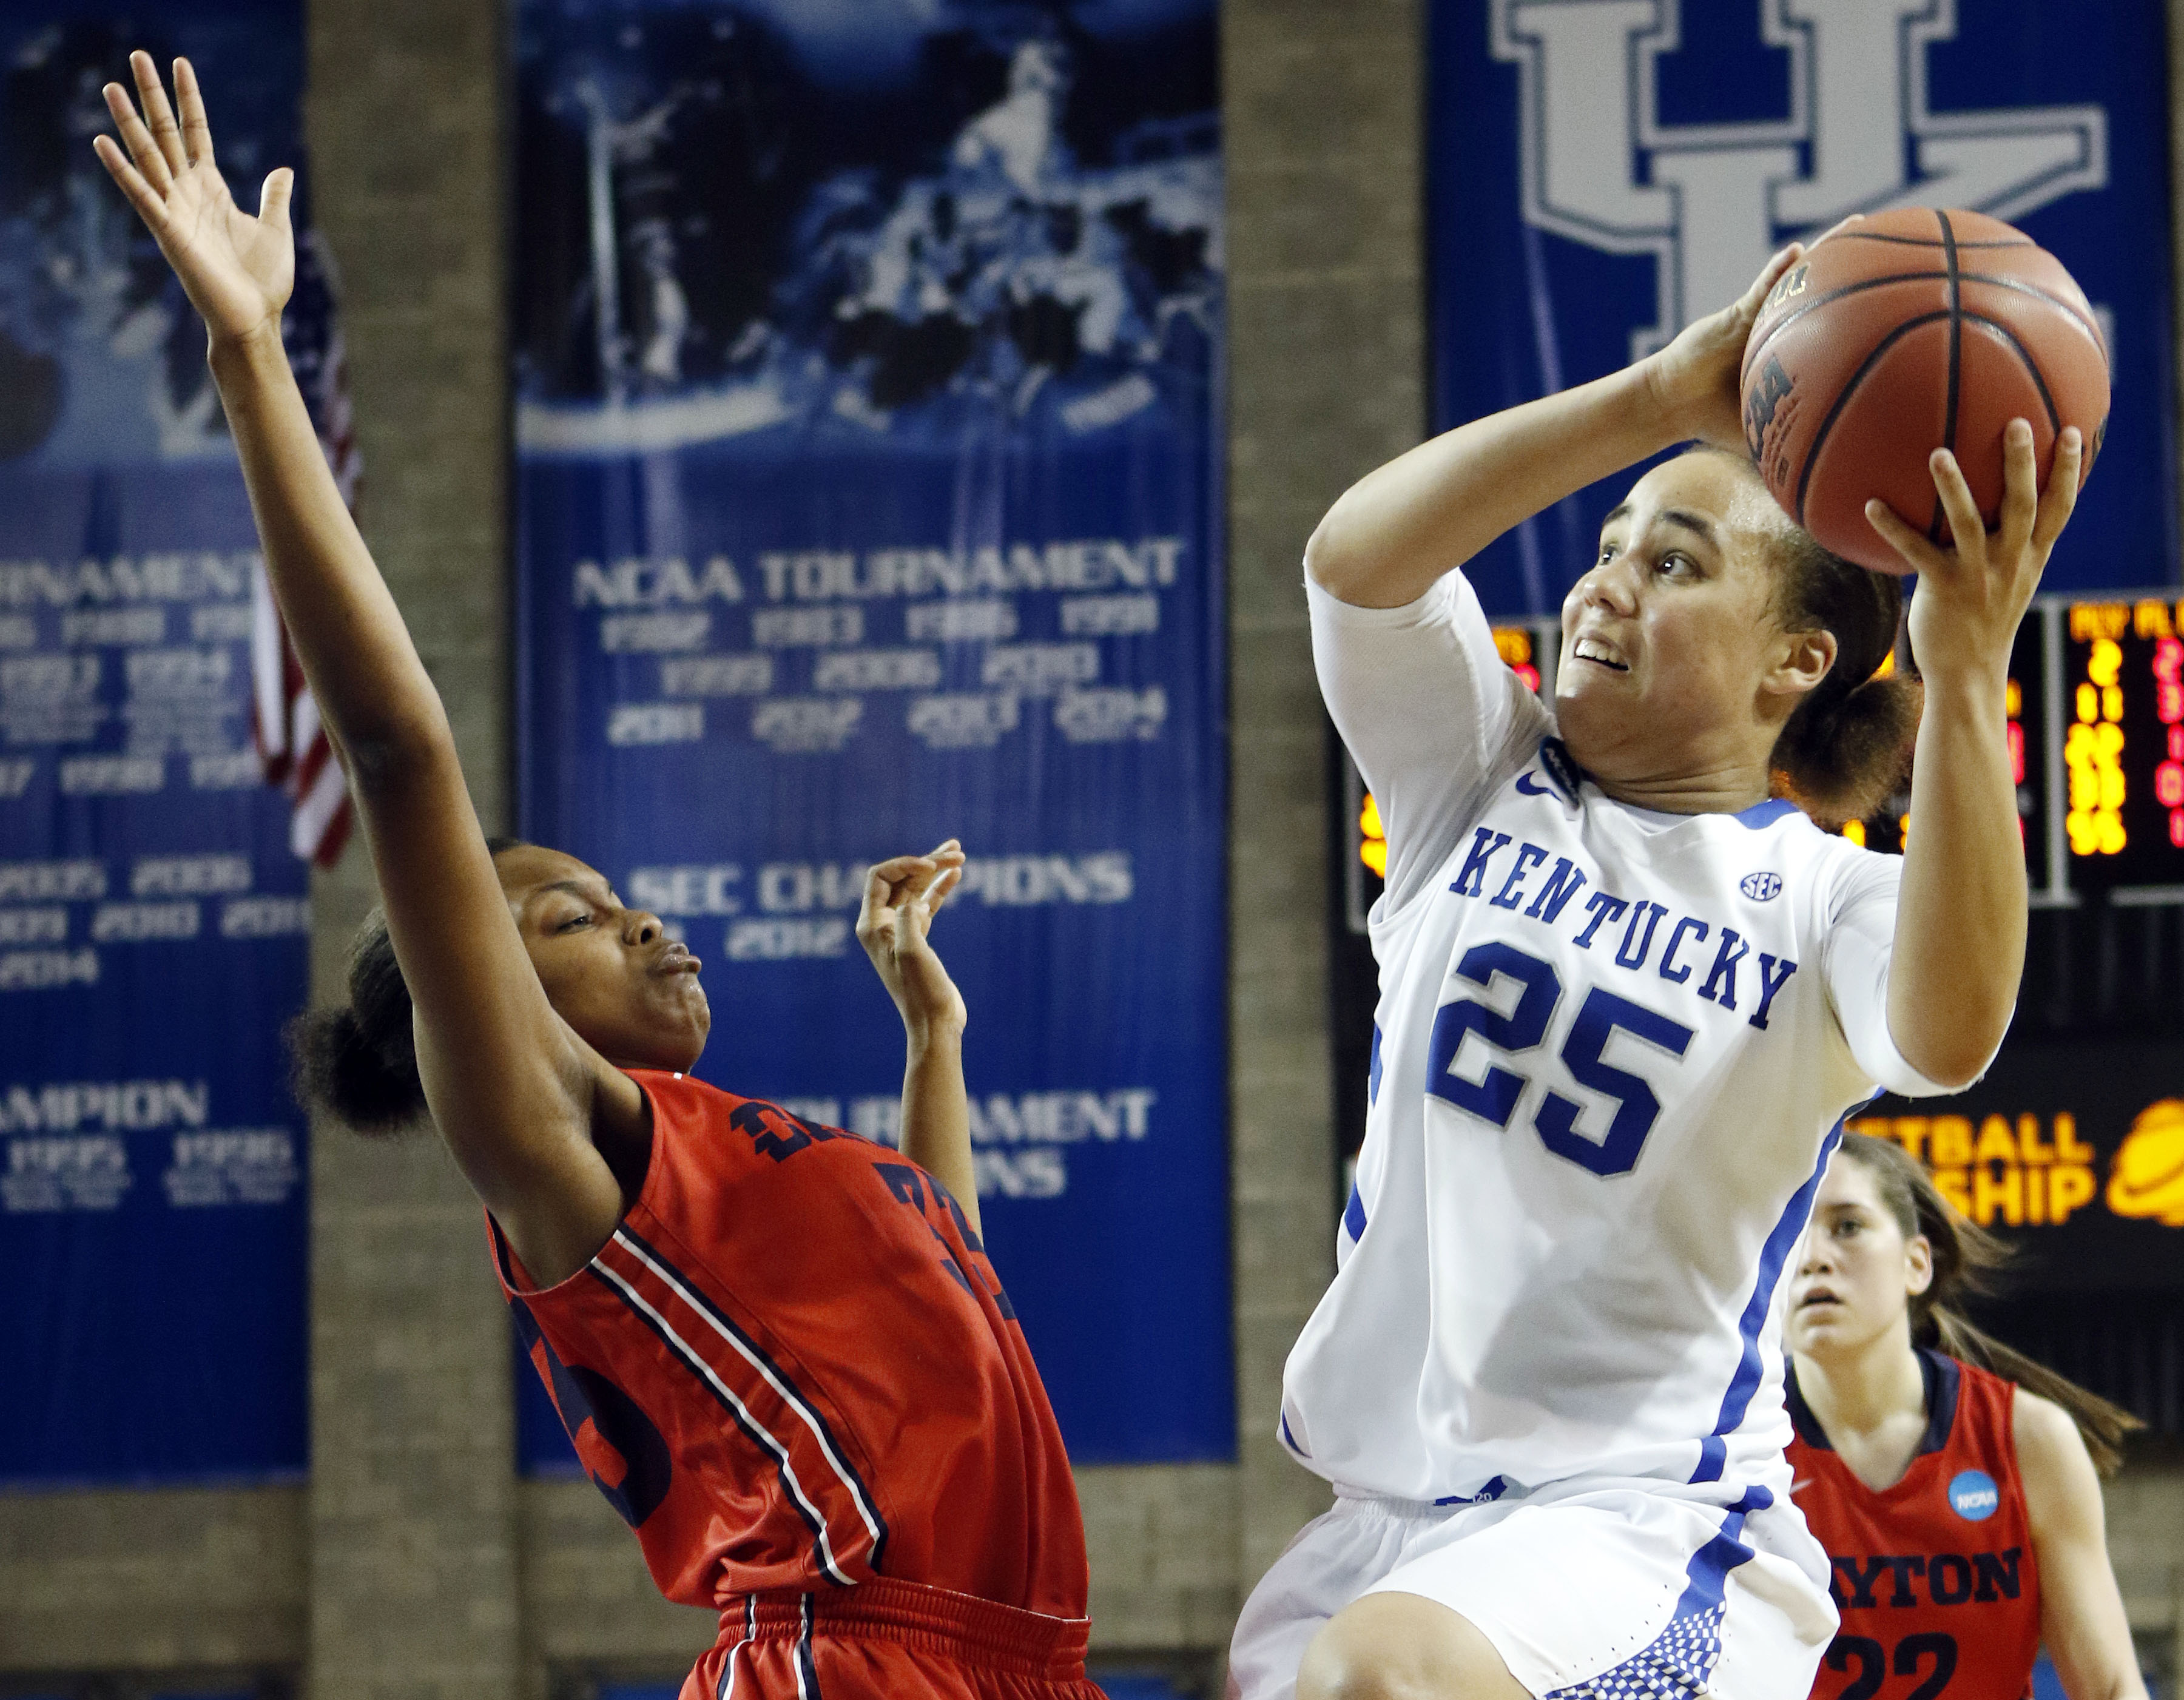 Kentucky's Makayla Epps (25) shoots while defended by Dayton's Javonna Layfield during the second half of a women's college basketball game in the second round of the NCAA tournament in Lexington, Ky., Sunday, March 22, 2015. Dayton won 99-94. (AP Photo/J